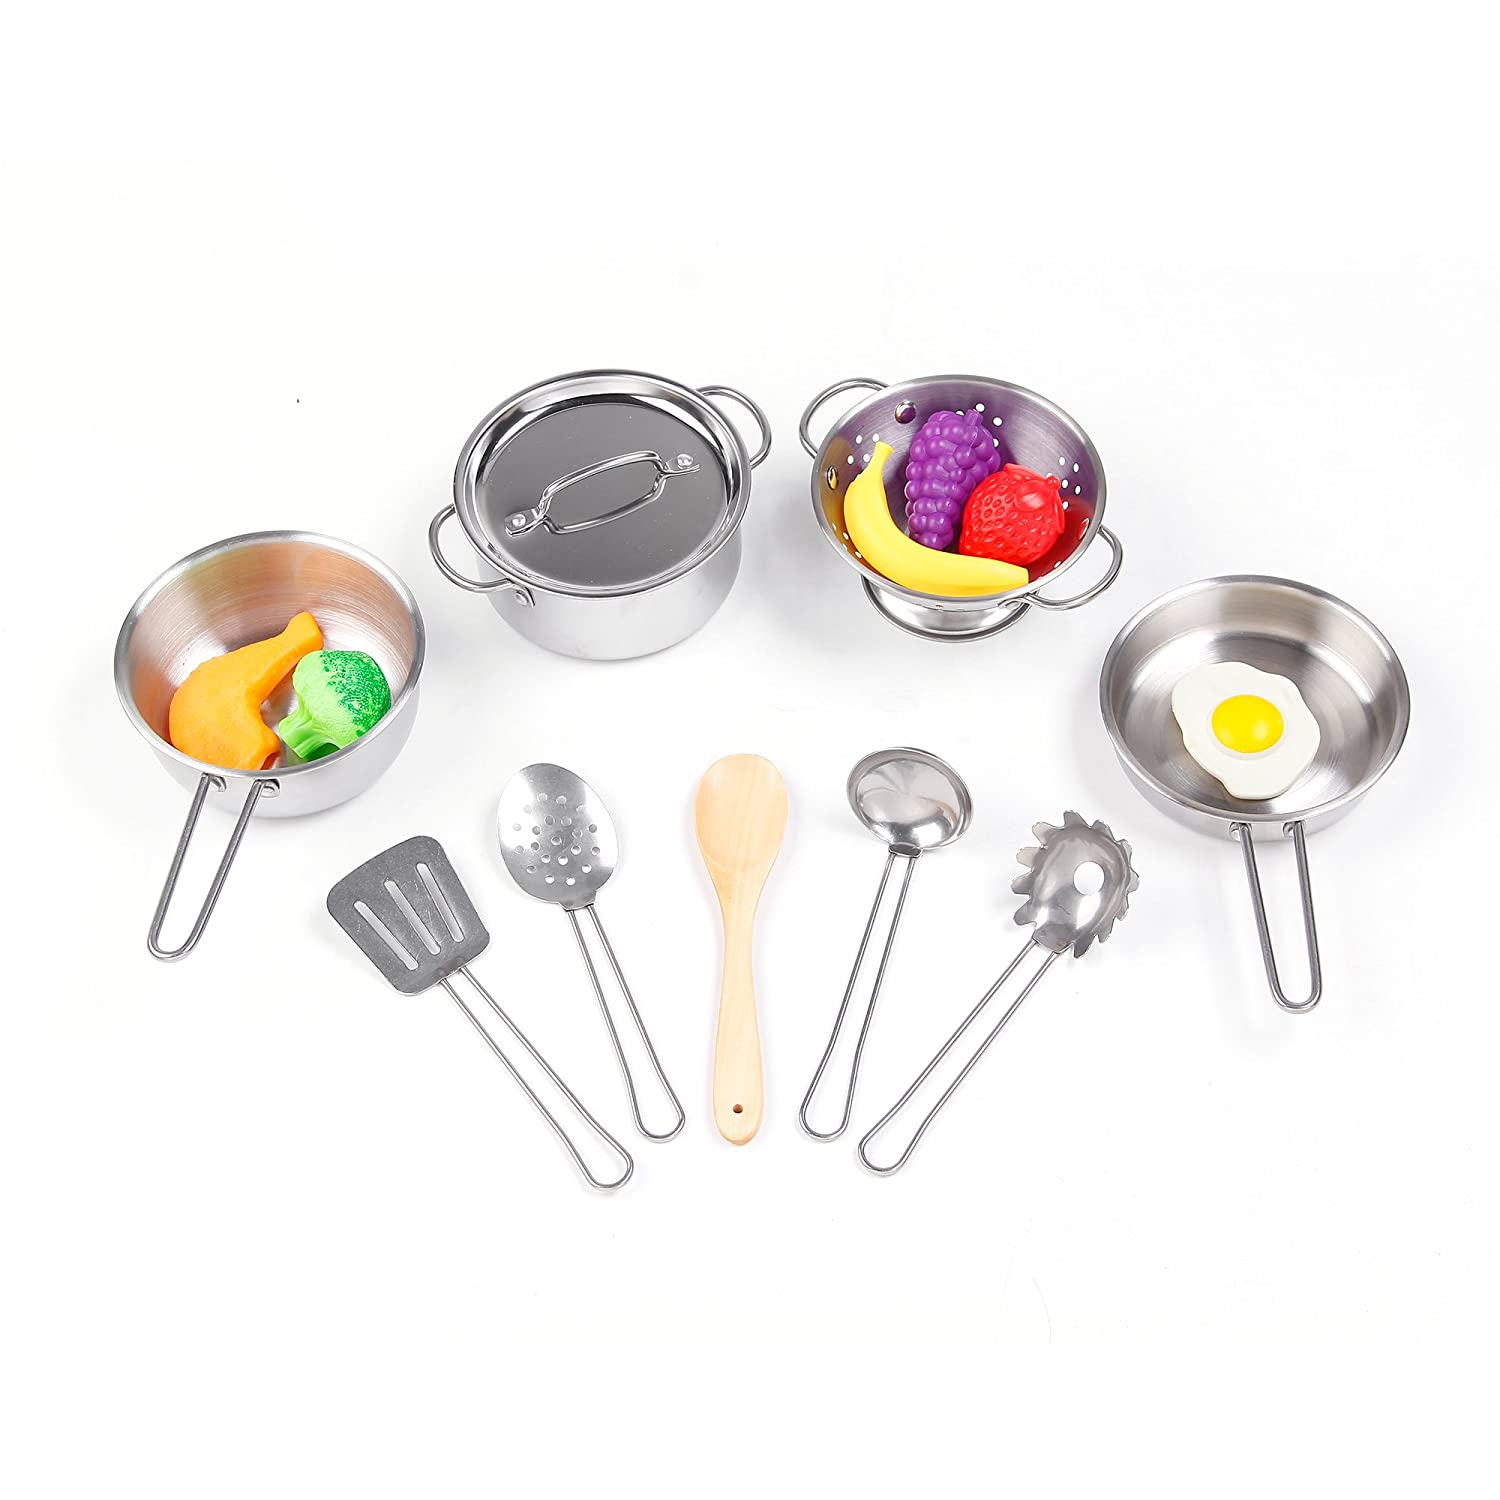 KIDAMI Large Size Kitchen Pretend Toys Stainless Steel Cookware Playset with 16 Pieces of Pots and Pans and Cooking Utensils for Kids (Upgrade)